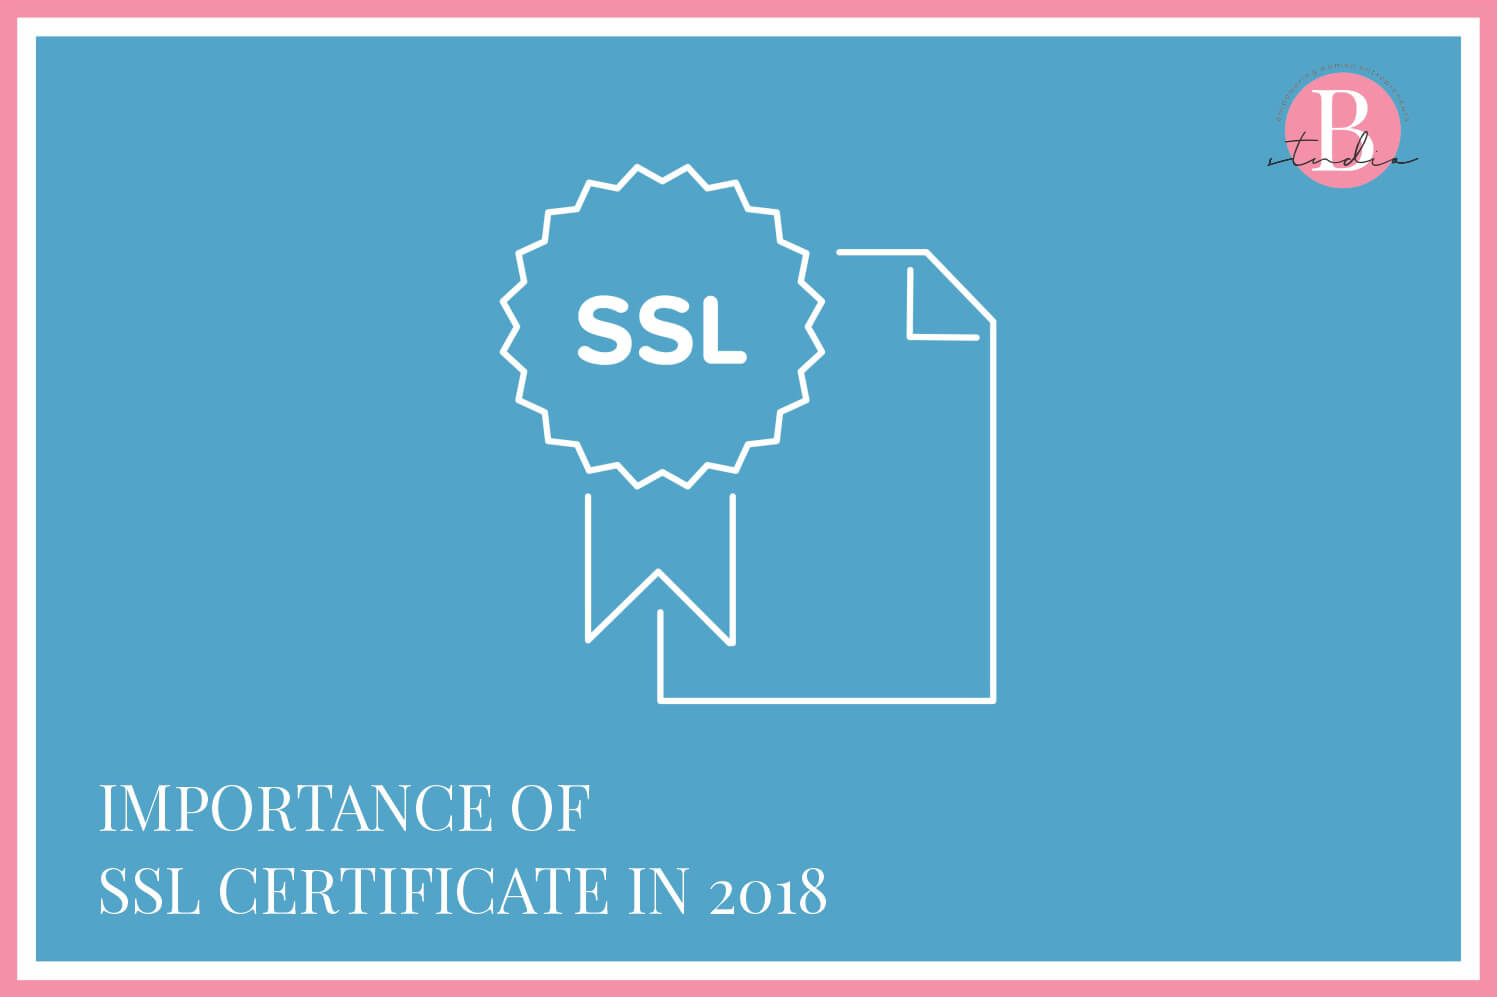 Importance of SSL Certificate img